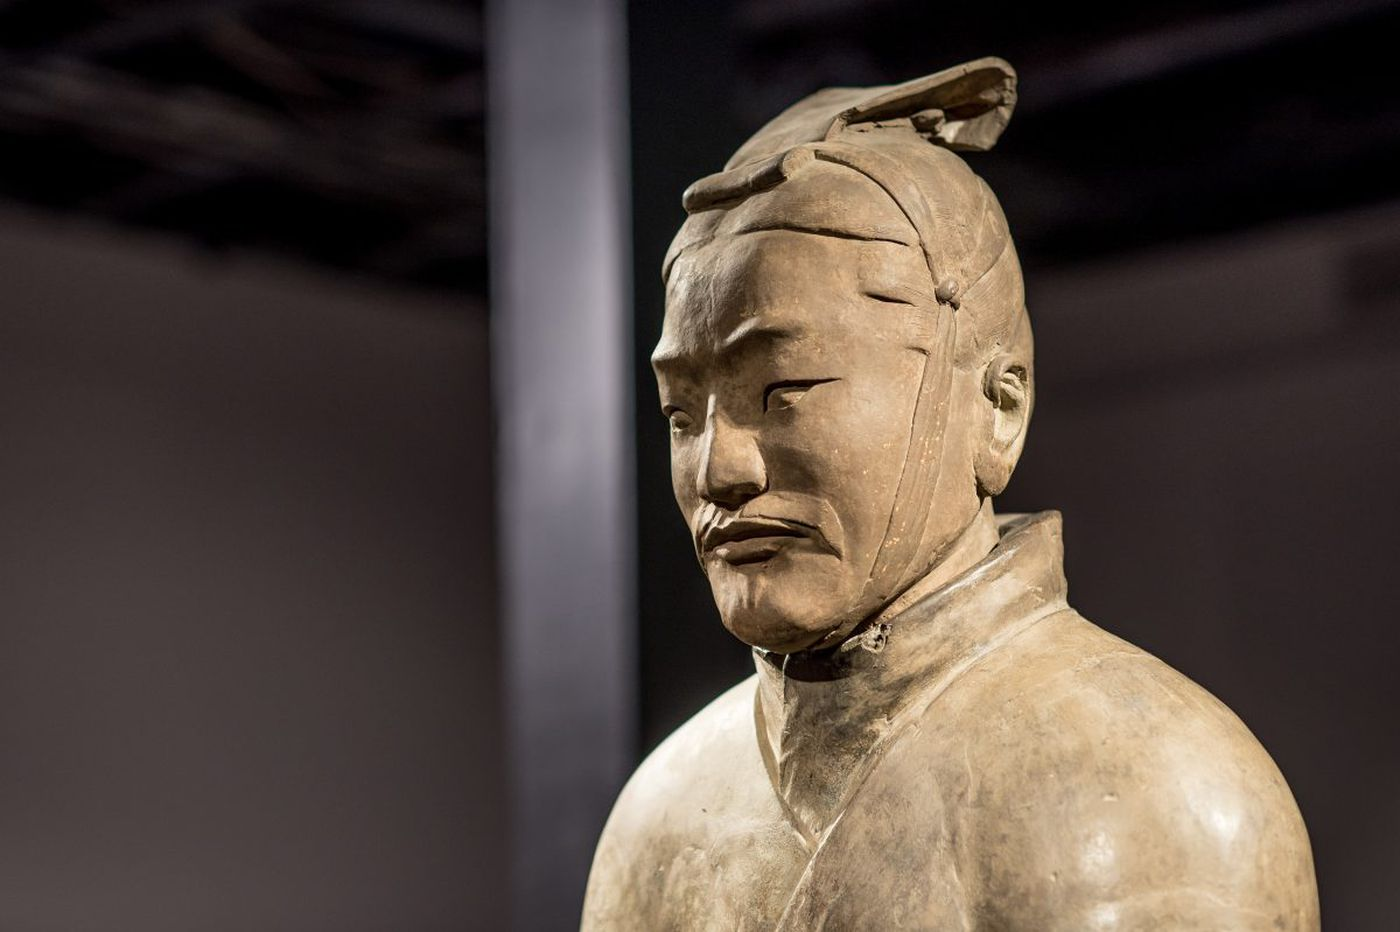 Franklin Institute partners with museum of terra-cotta warriors in China